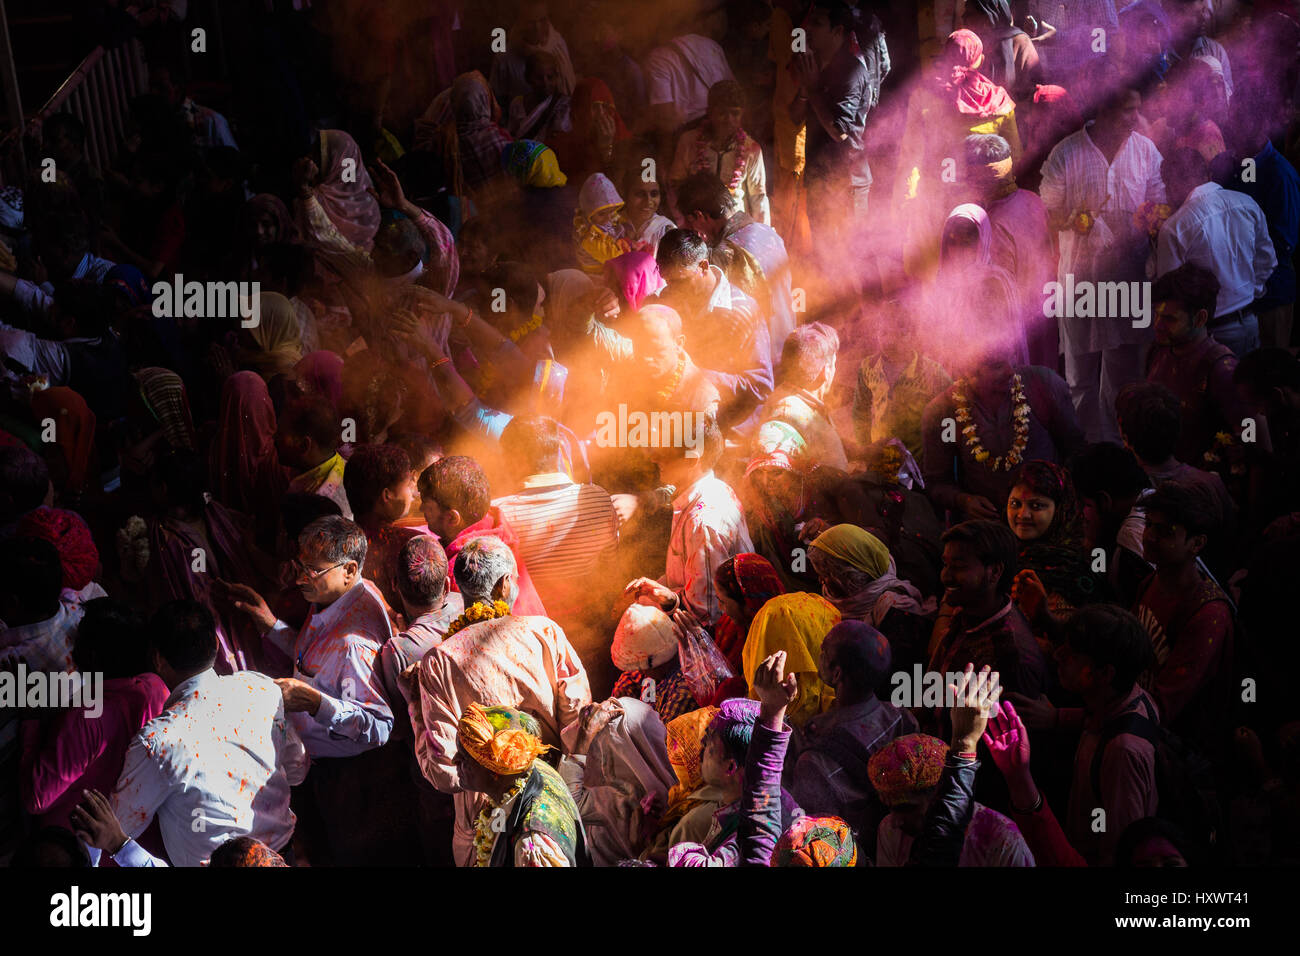 BARSANA - MAR 05, 2017: Holi celebration in India. The festival of colors being celebrated in the ancient city of Stock Photo